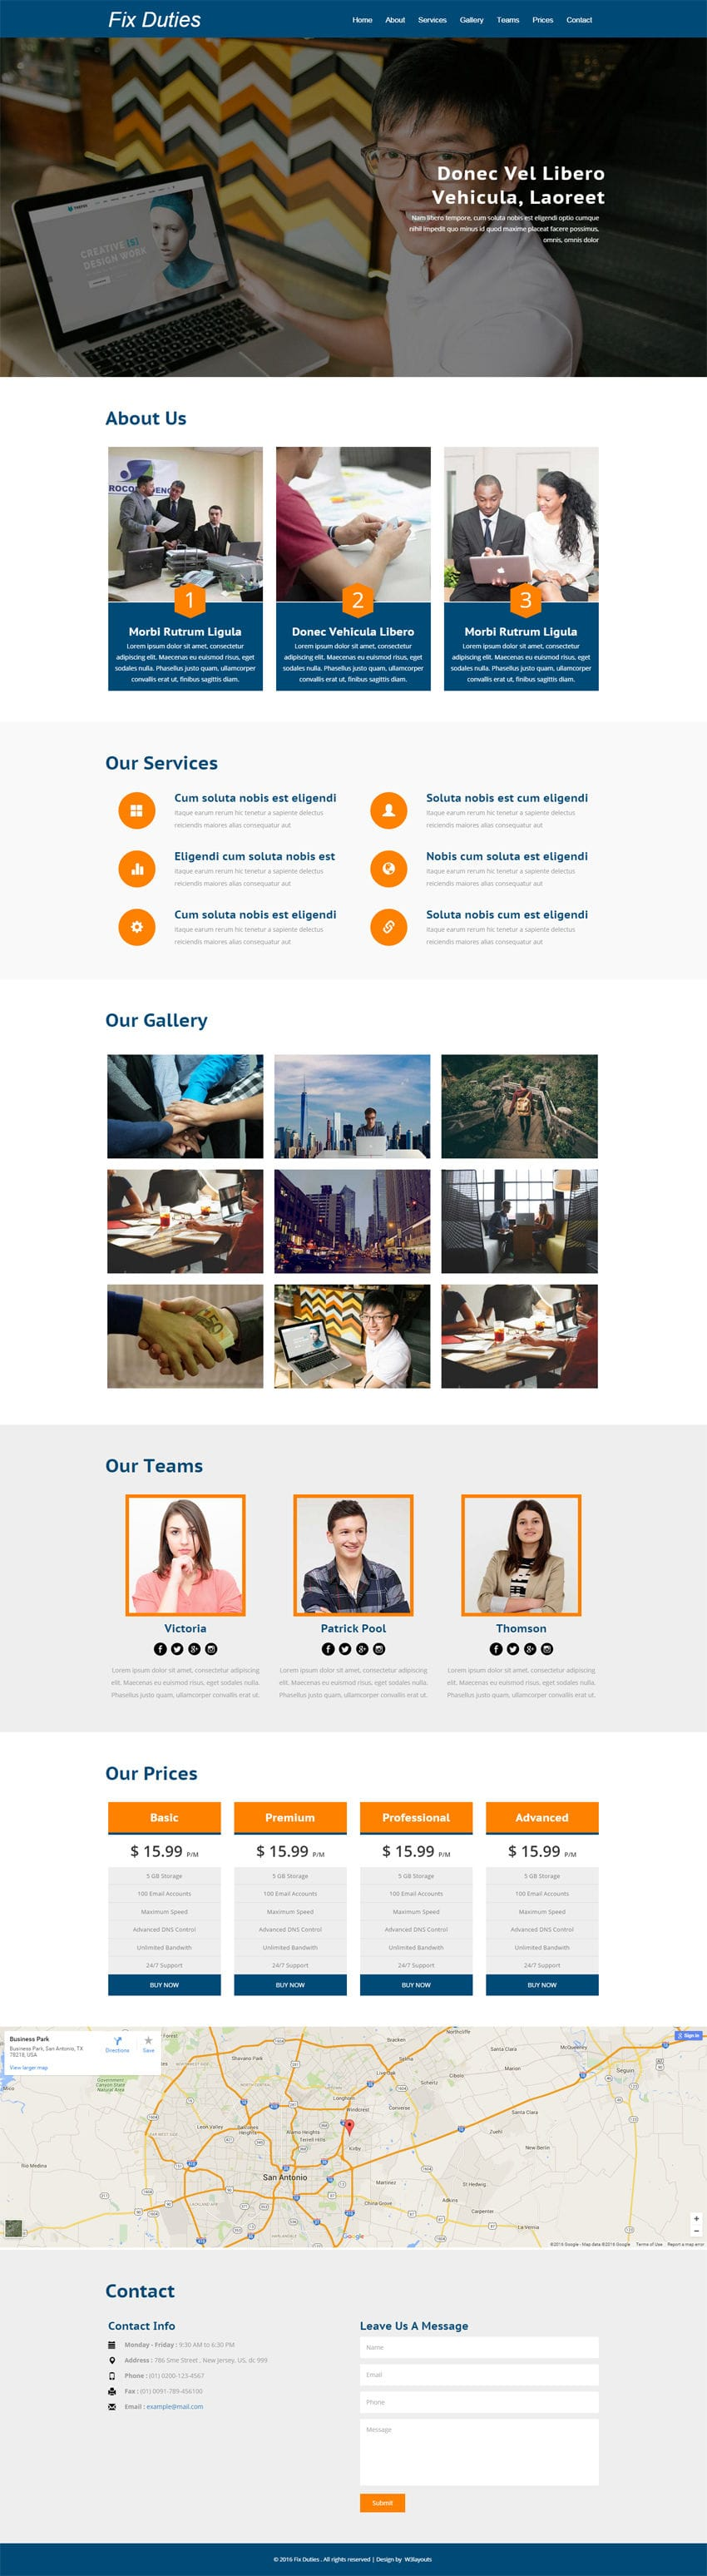 Fix Duties a Corporate Category Flat Bootstrap Responsive